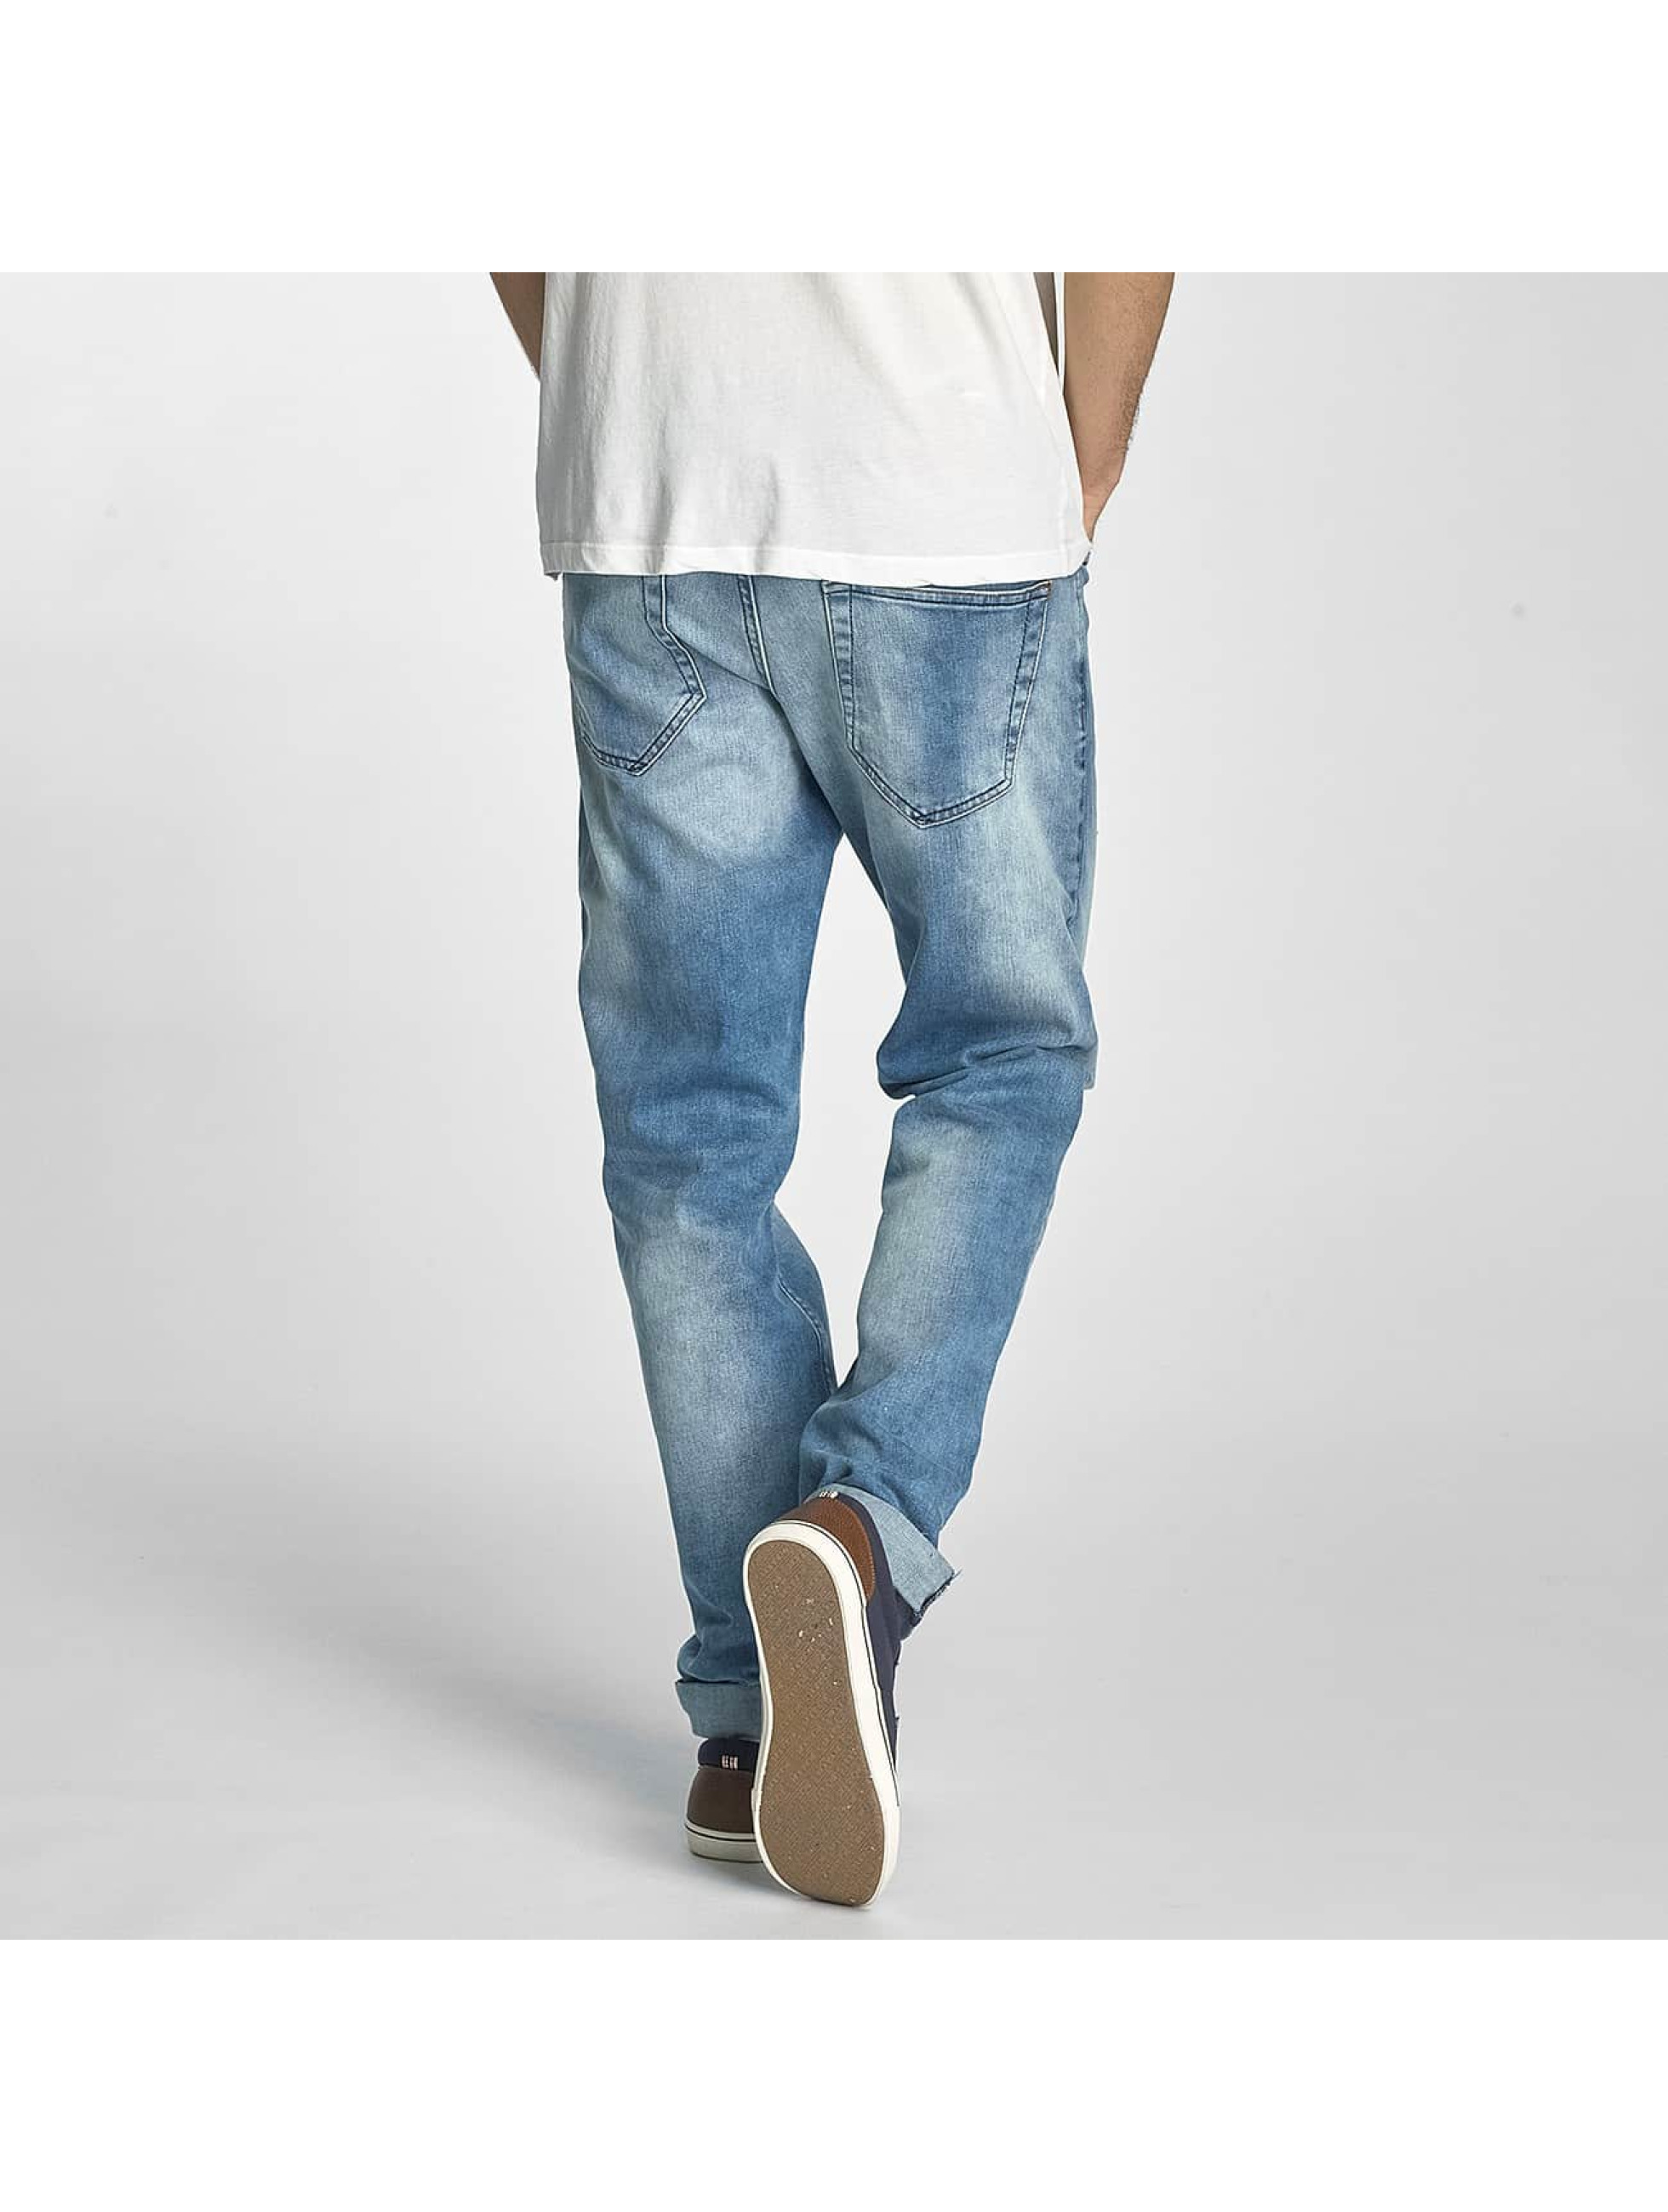 Only-amp-Sons-Uomini-Jeans-Jeans-straight-fit-onsWeft-3174